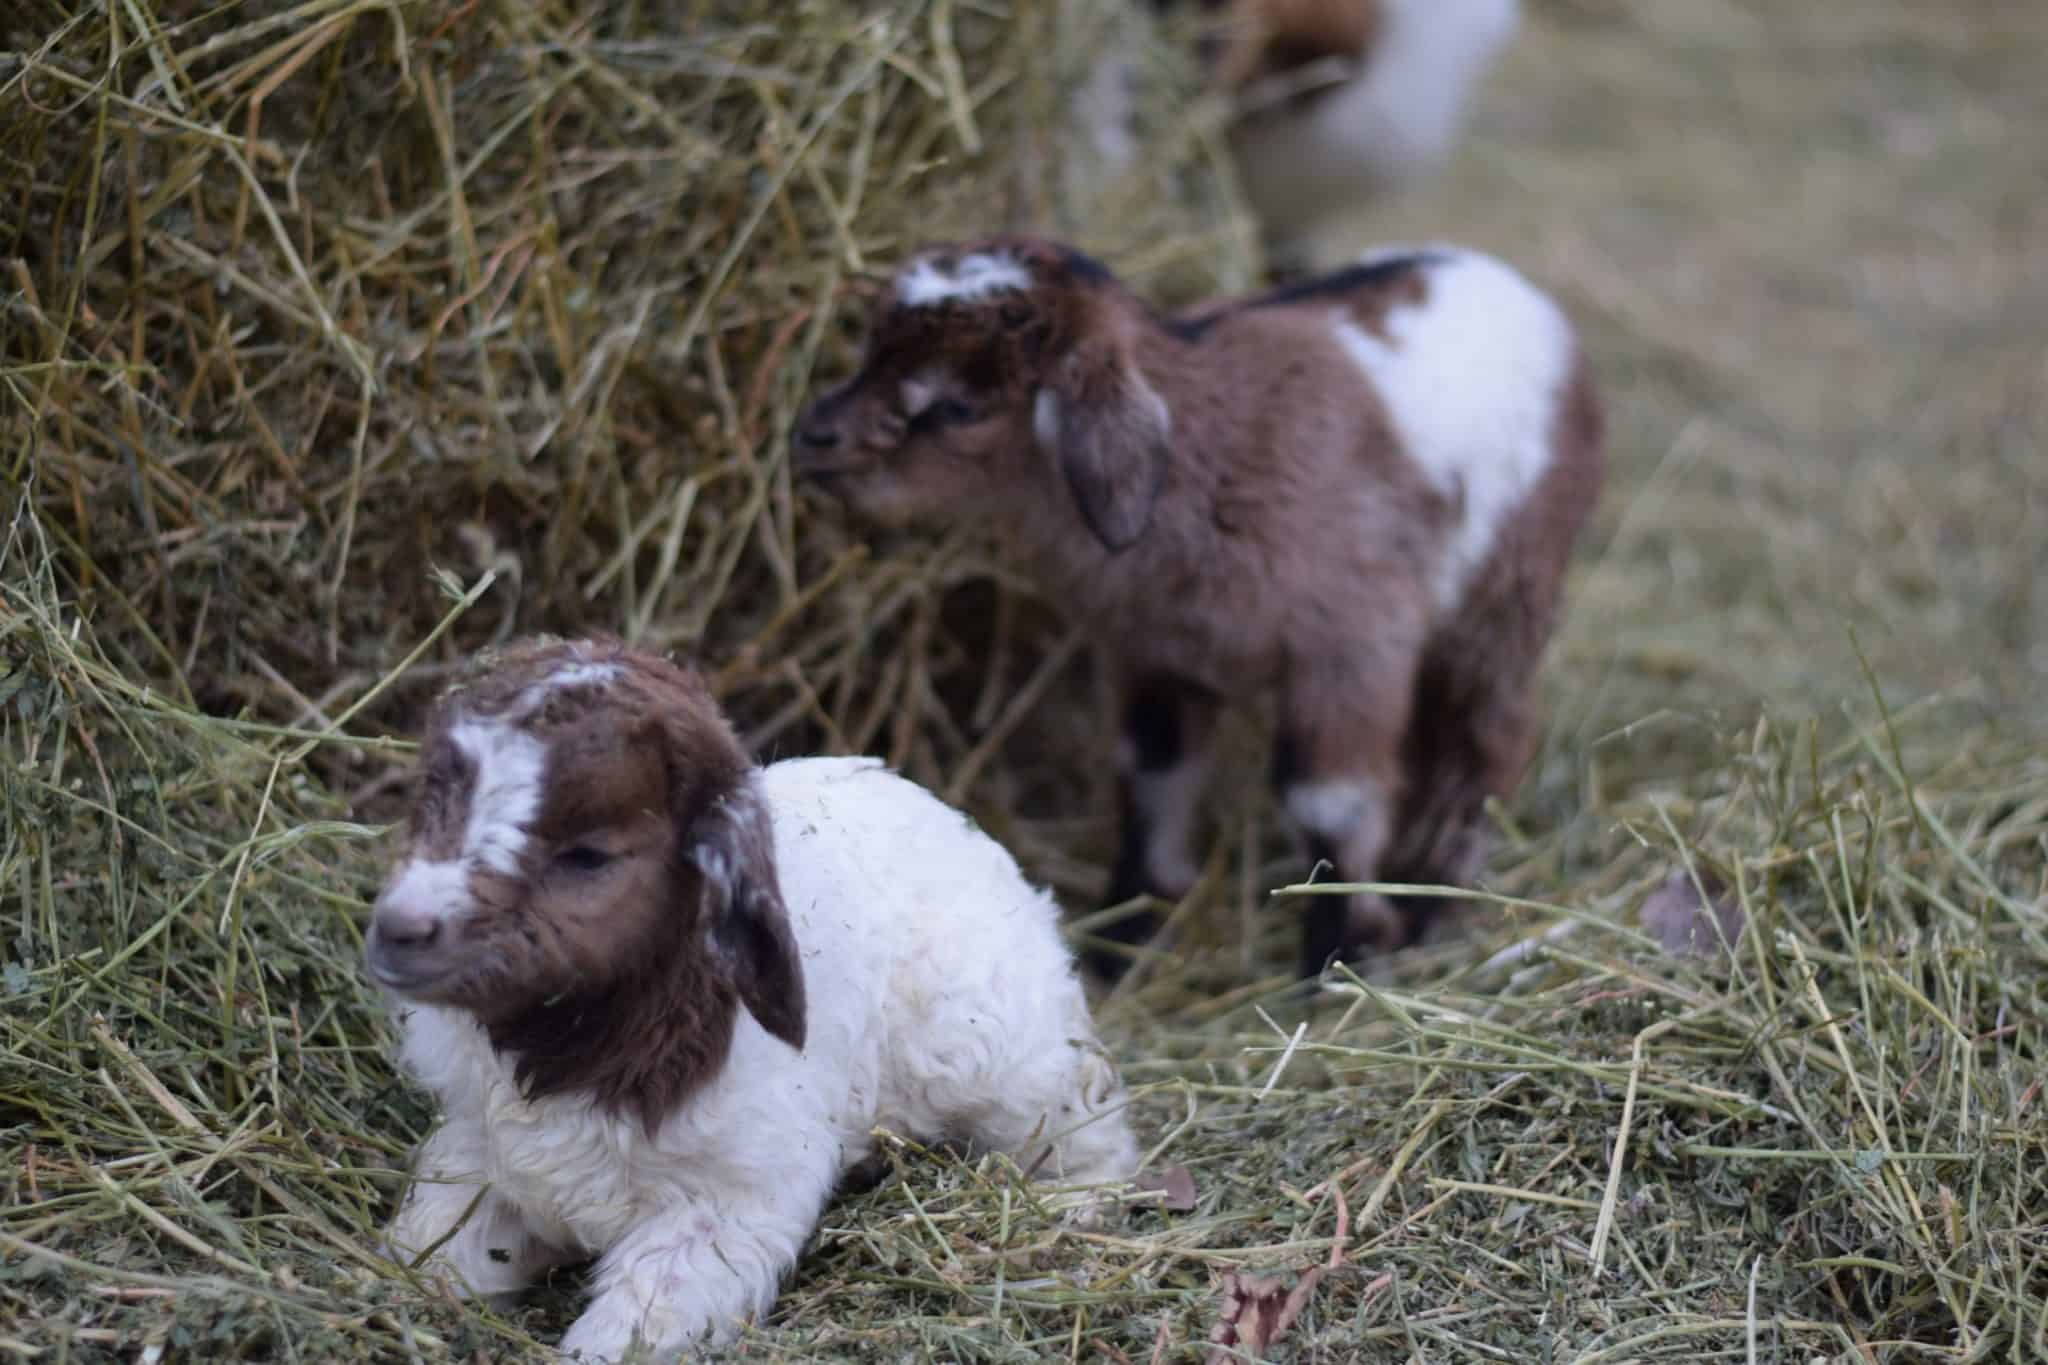 two newborn baby goats laying in a hay pile